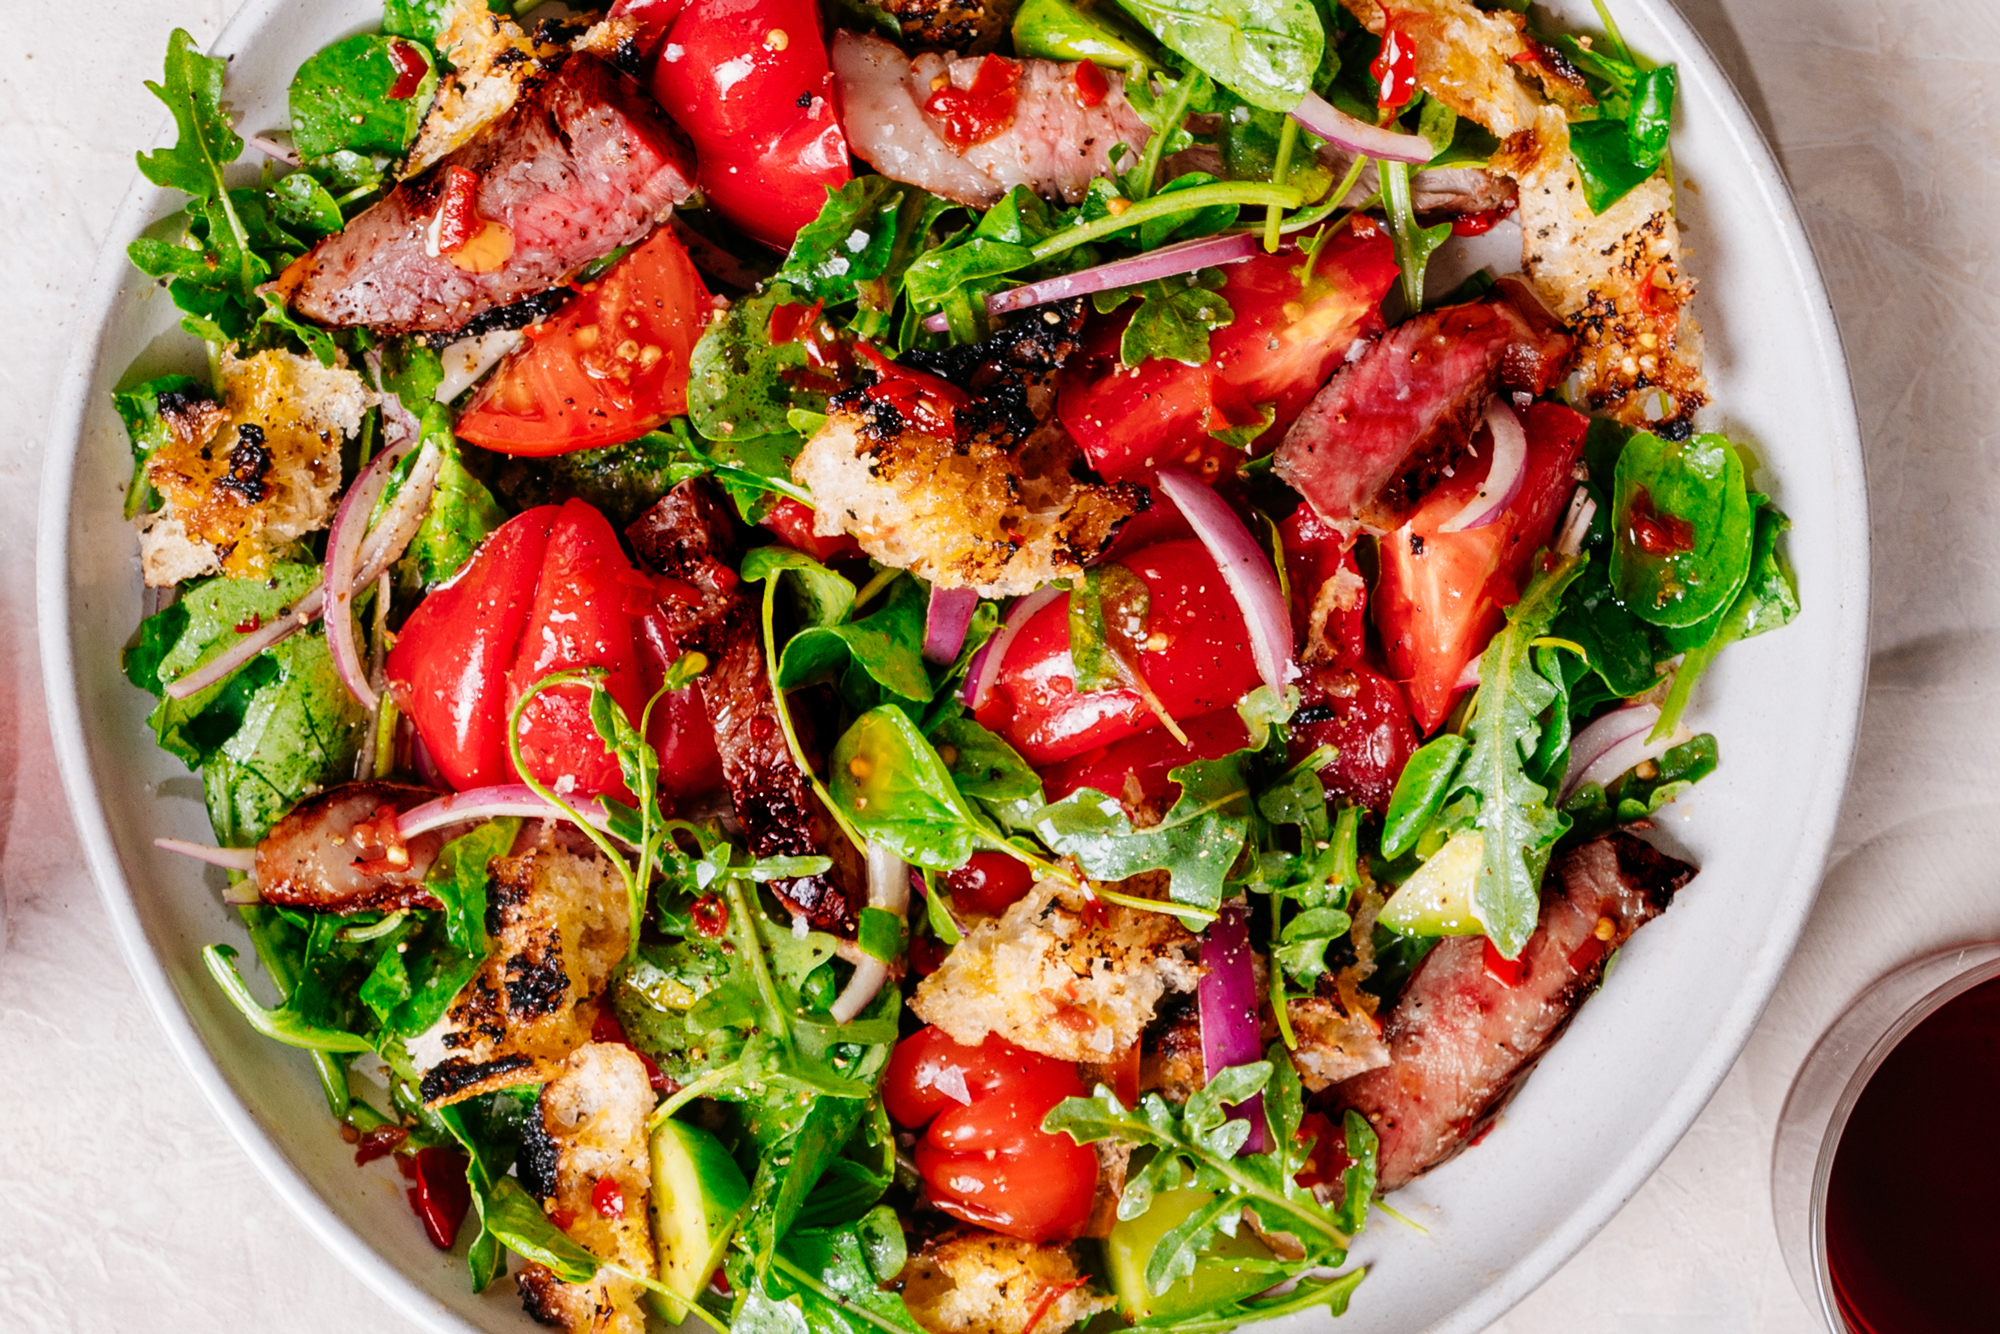 Charred Focaccia and Steak Salad Recipe